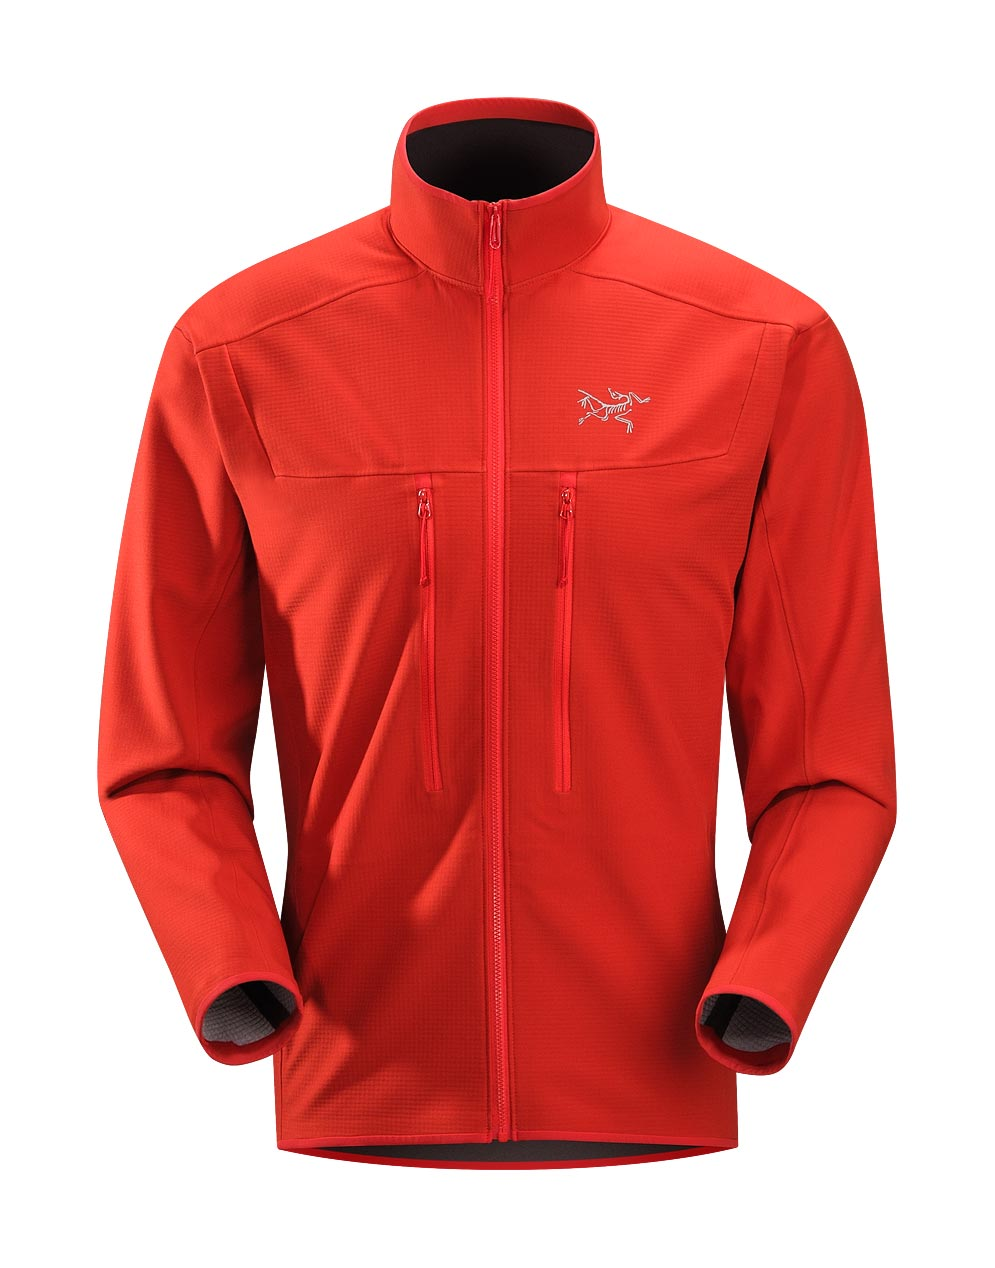 Arcteryx Jackets Men Cardinal Acto MX Jacket